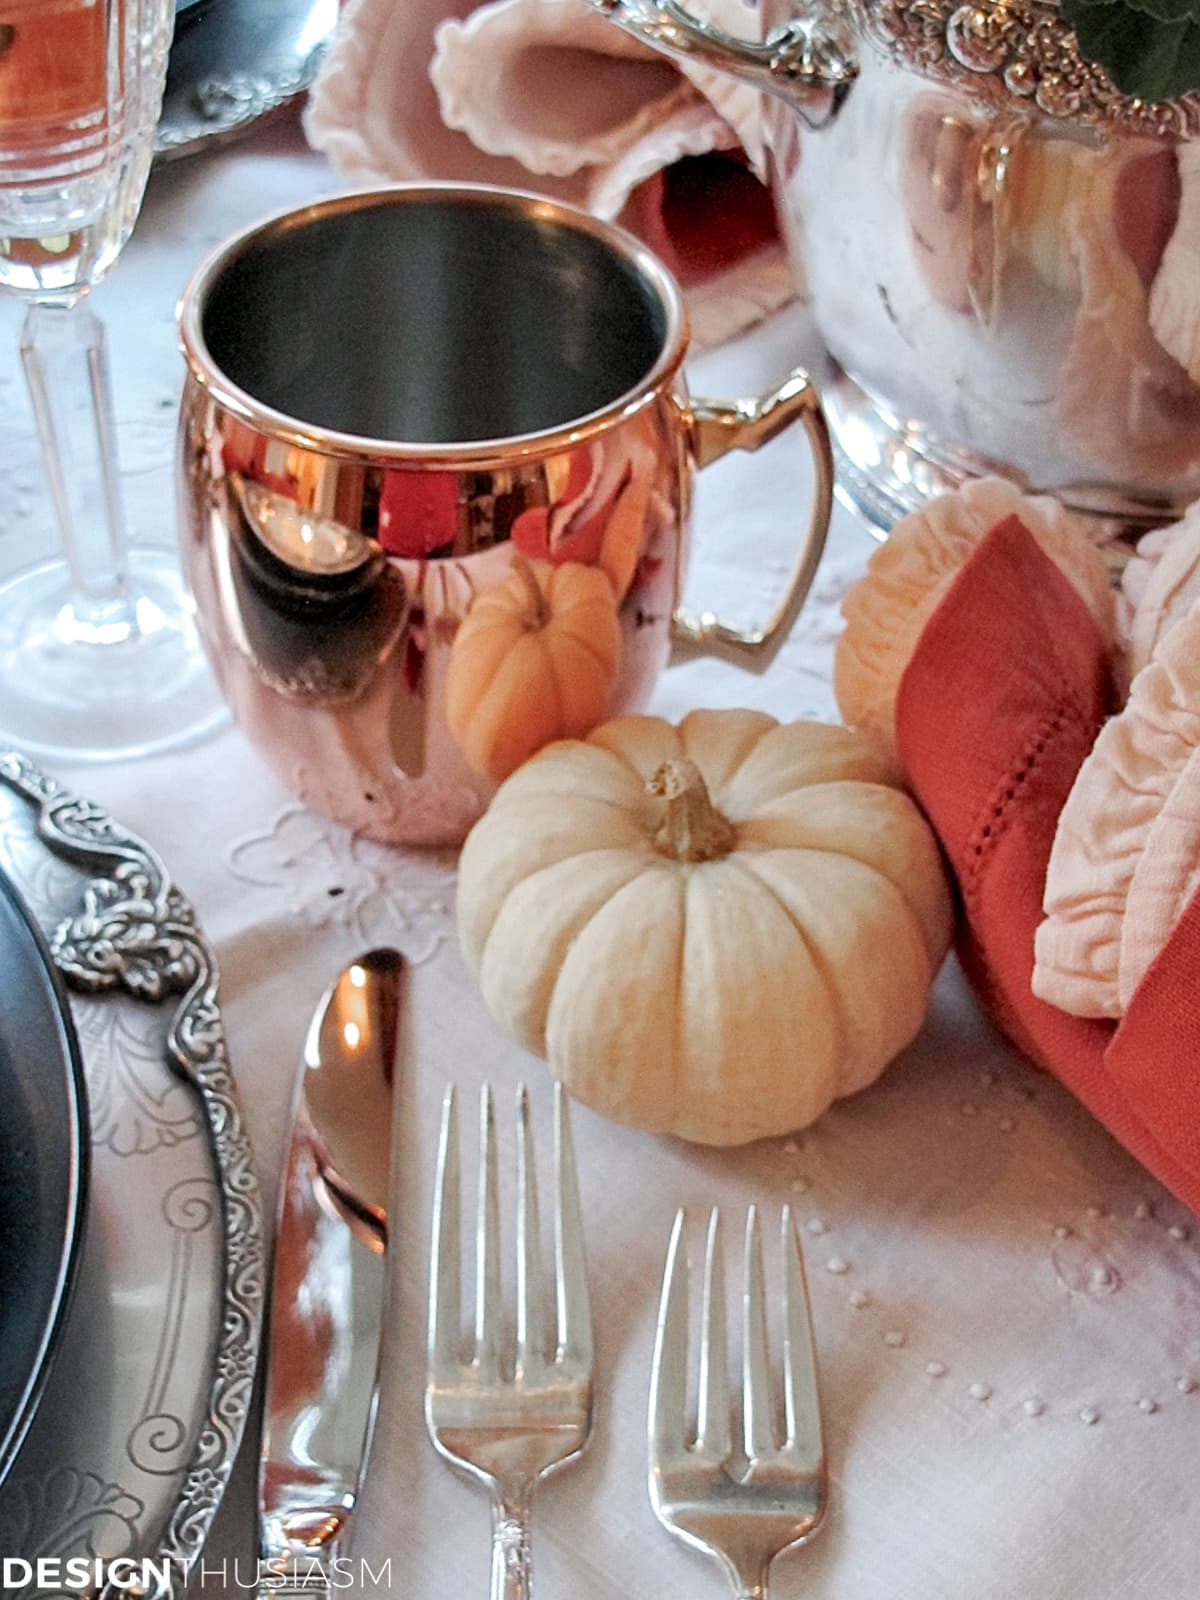 copper mugs for Halloween decor ideas